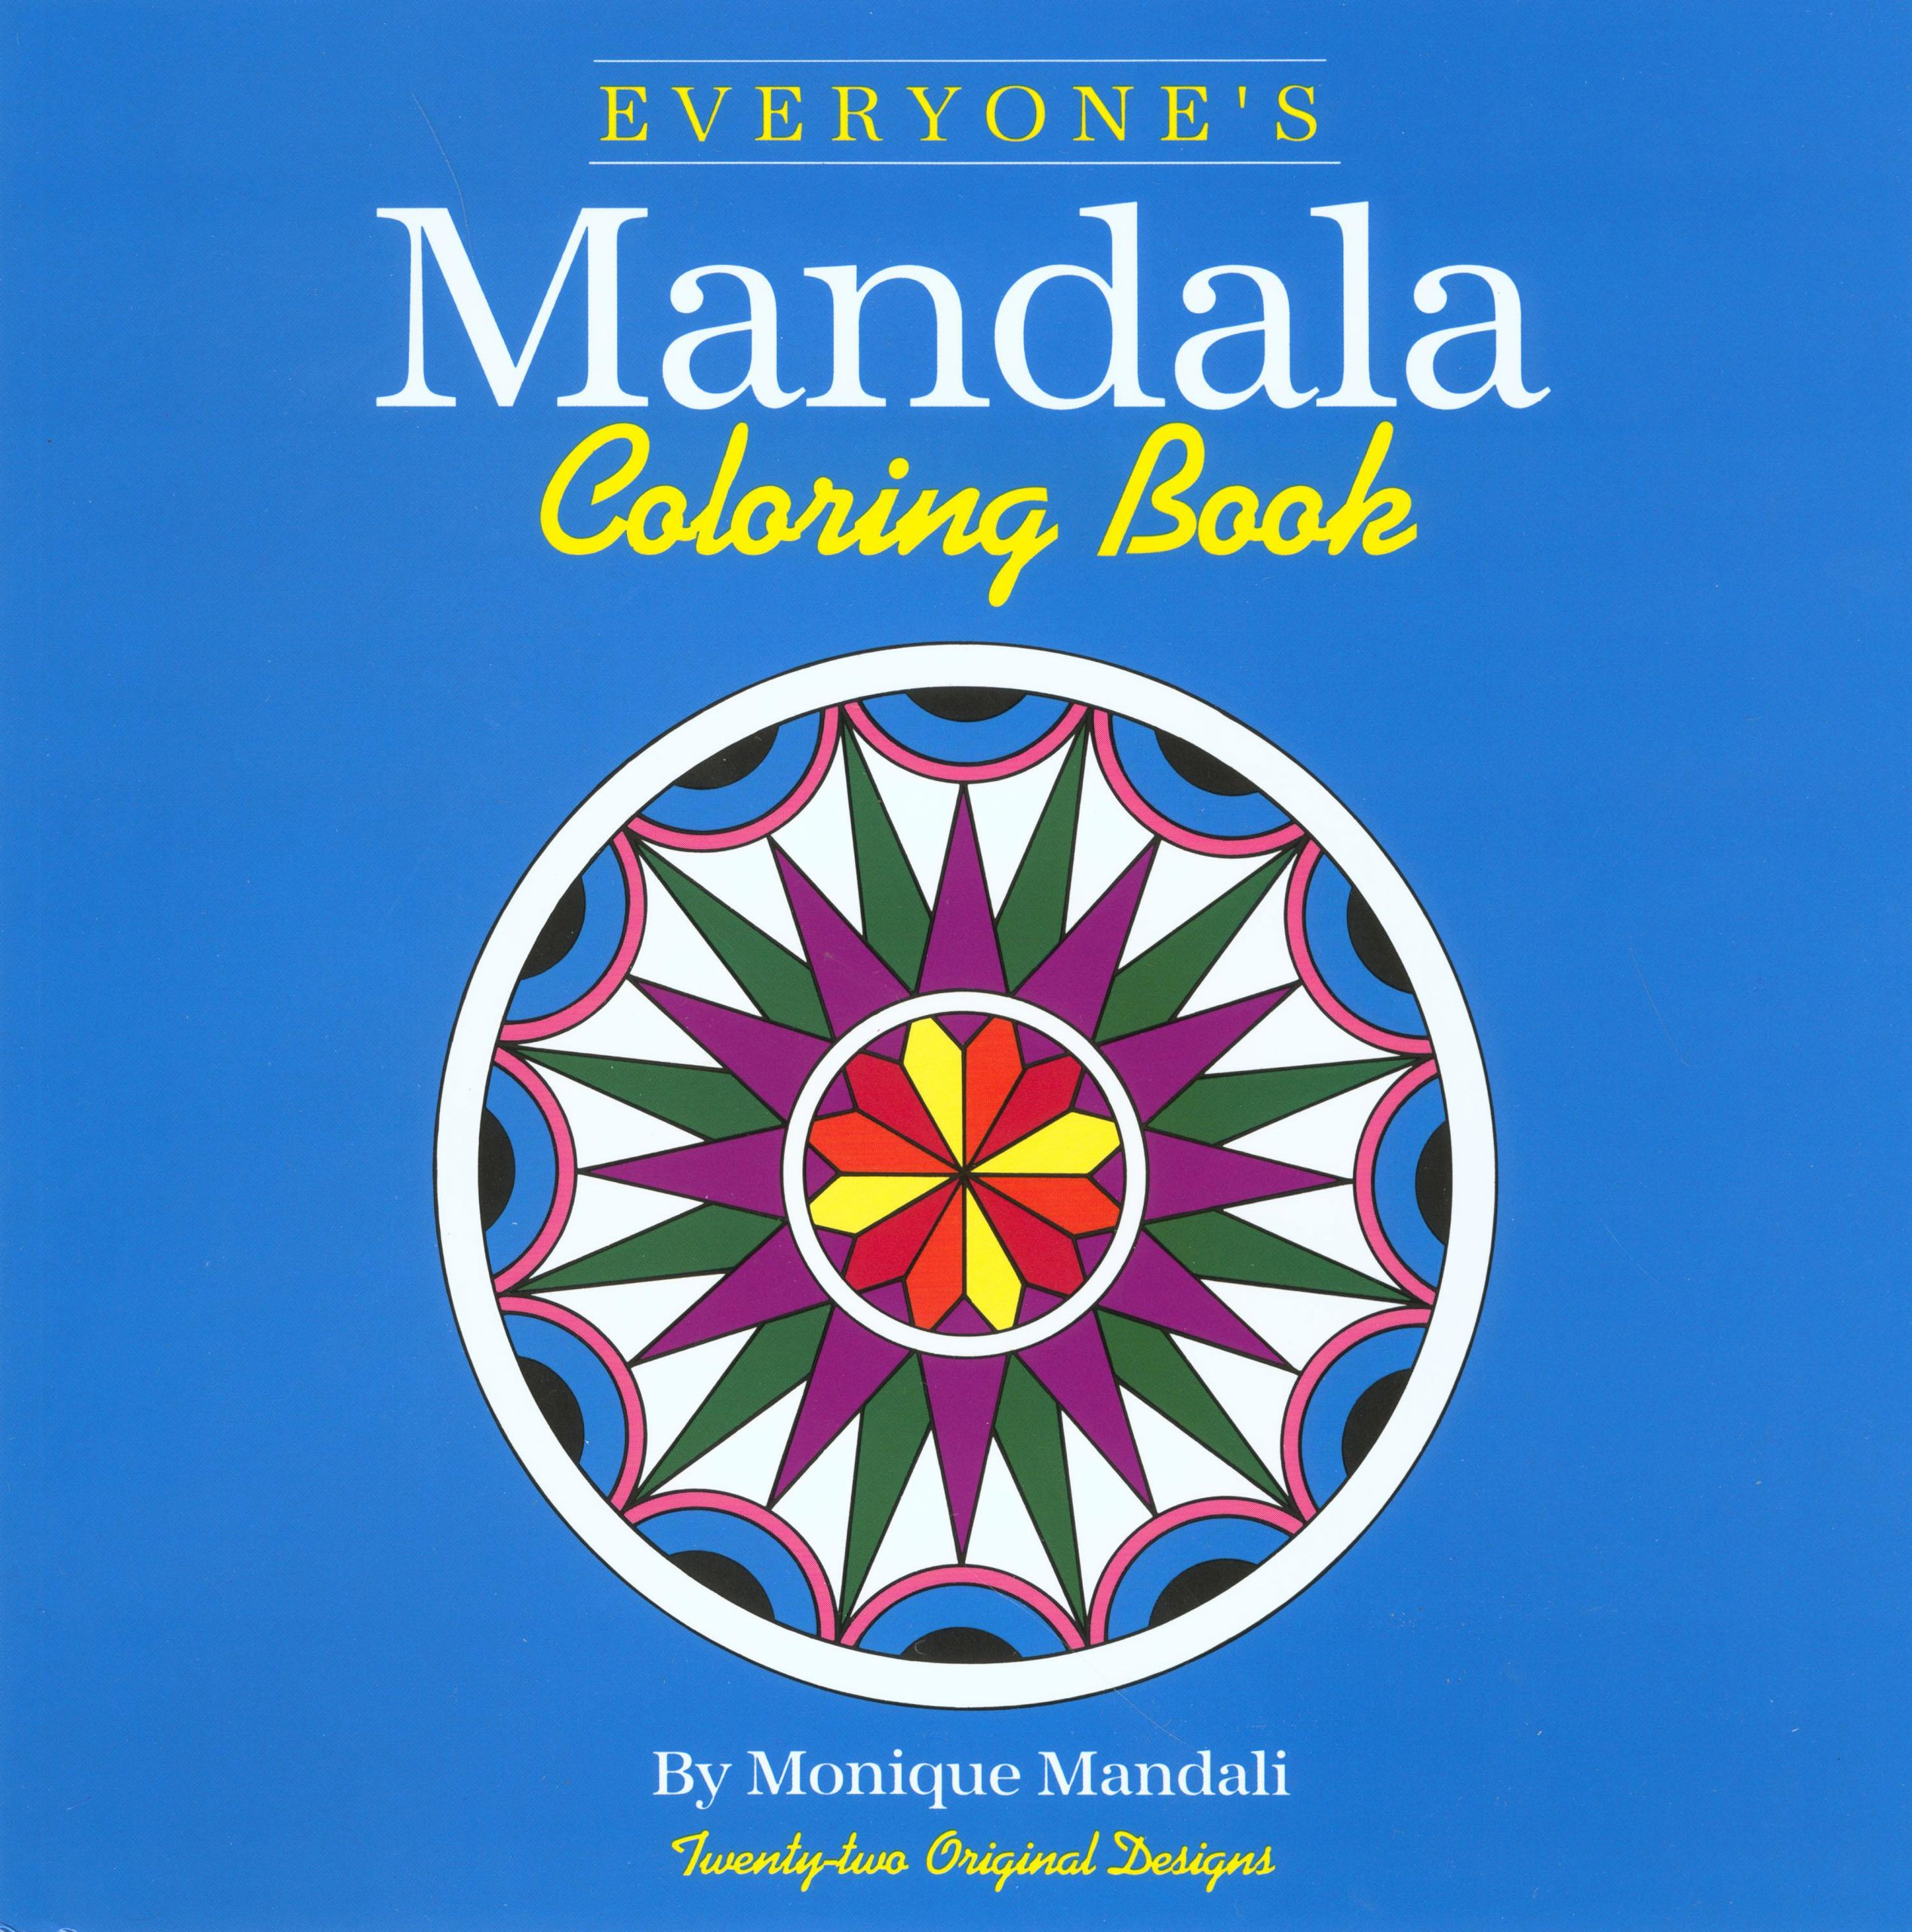 79 Mandala Coloring Book For Seniors Easy Mandalas In Large Print Adults With Low Vision